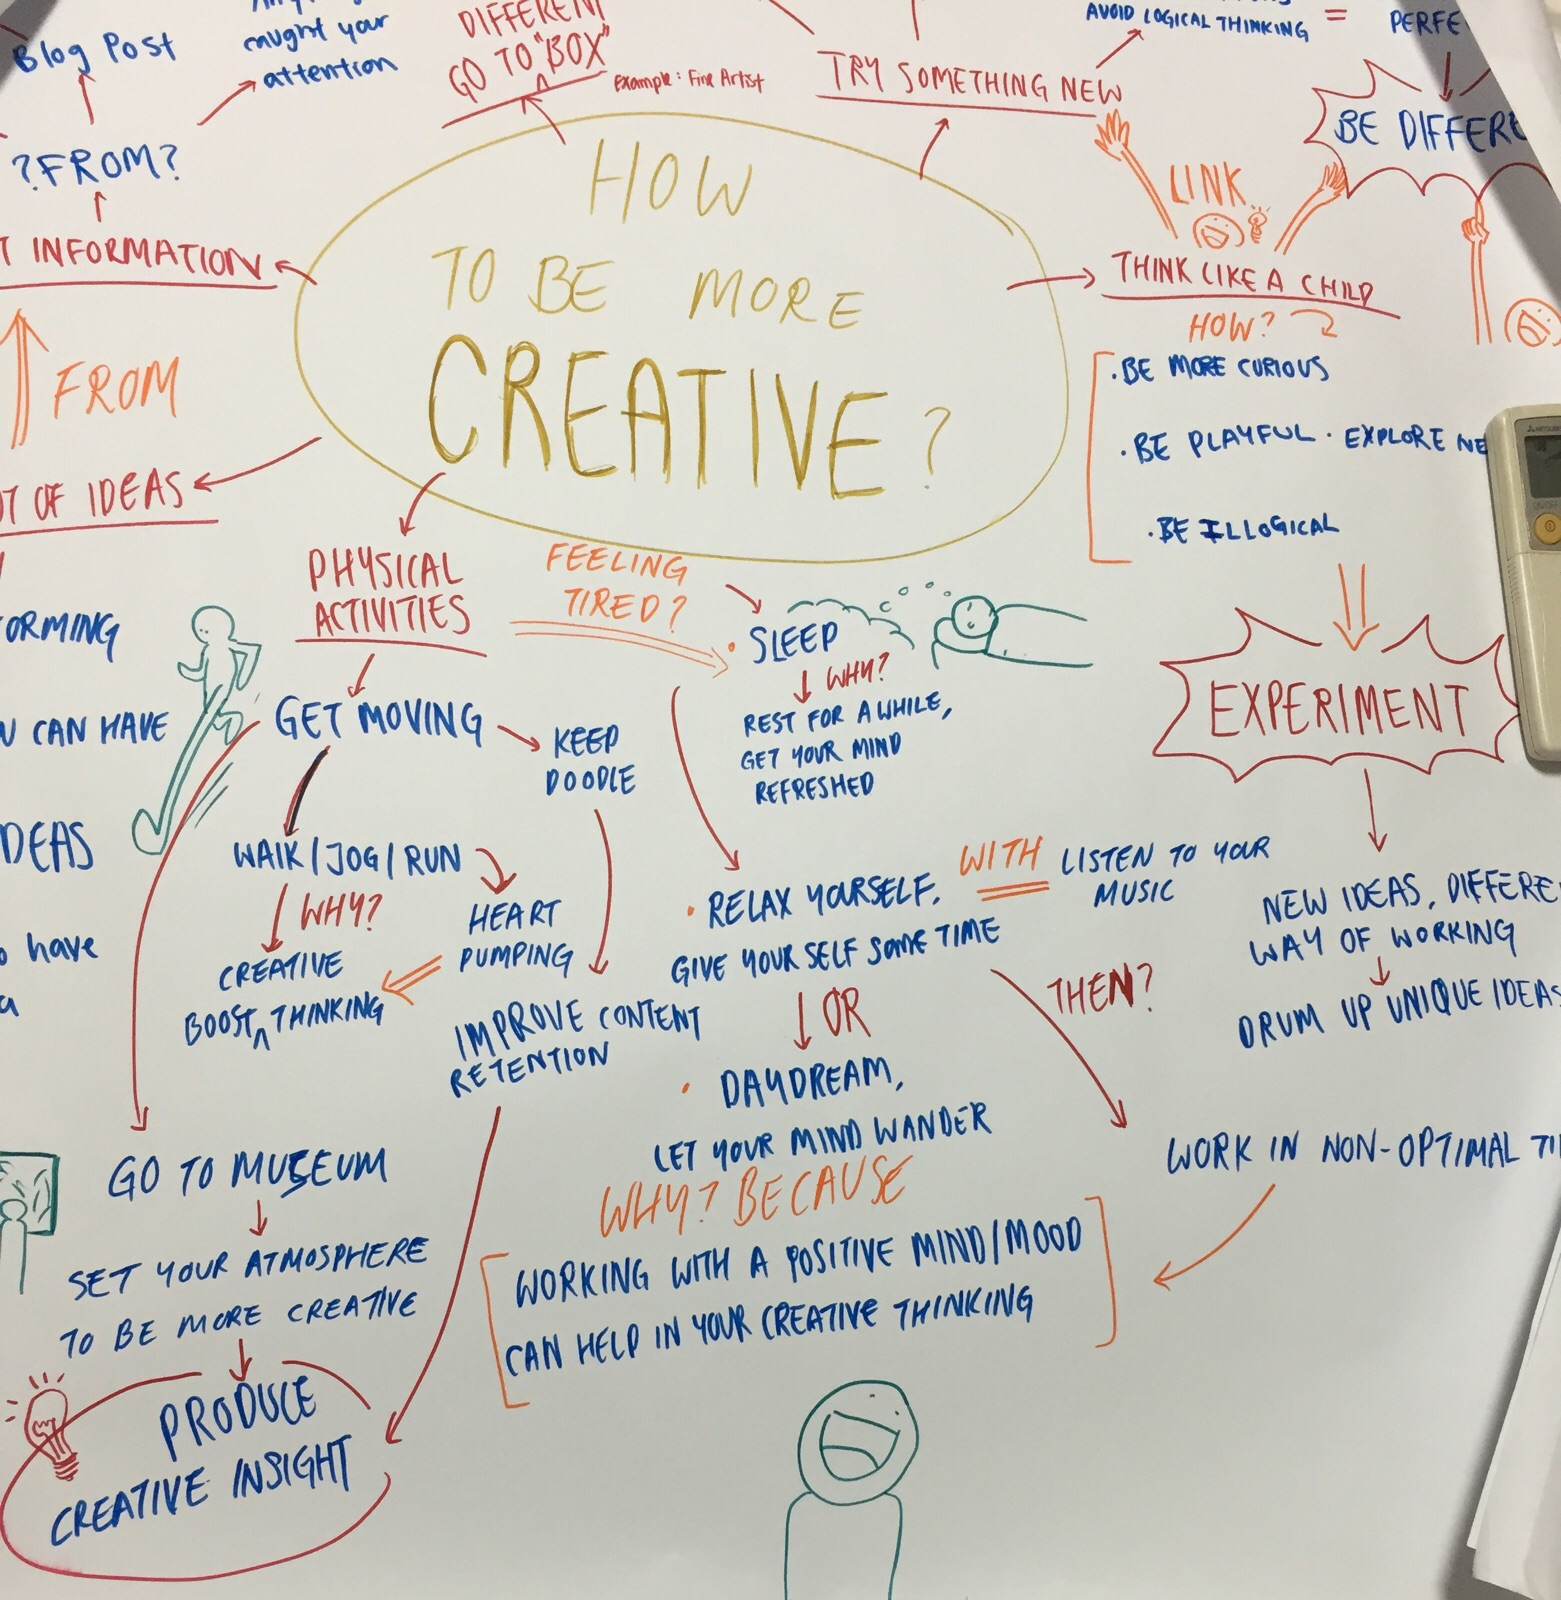 journal for creative thinking how to be more creative i believe this ways will help me and teammate too if we have mind block in the future we can always seek other ways to have new ideas